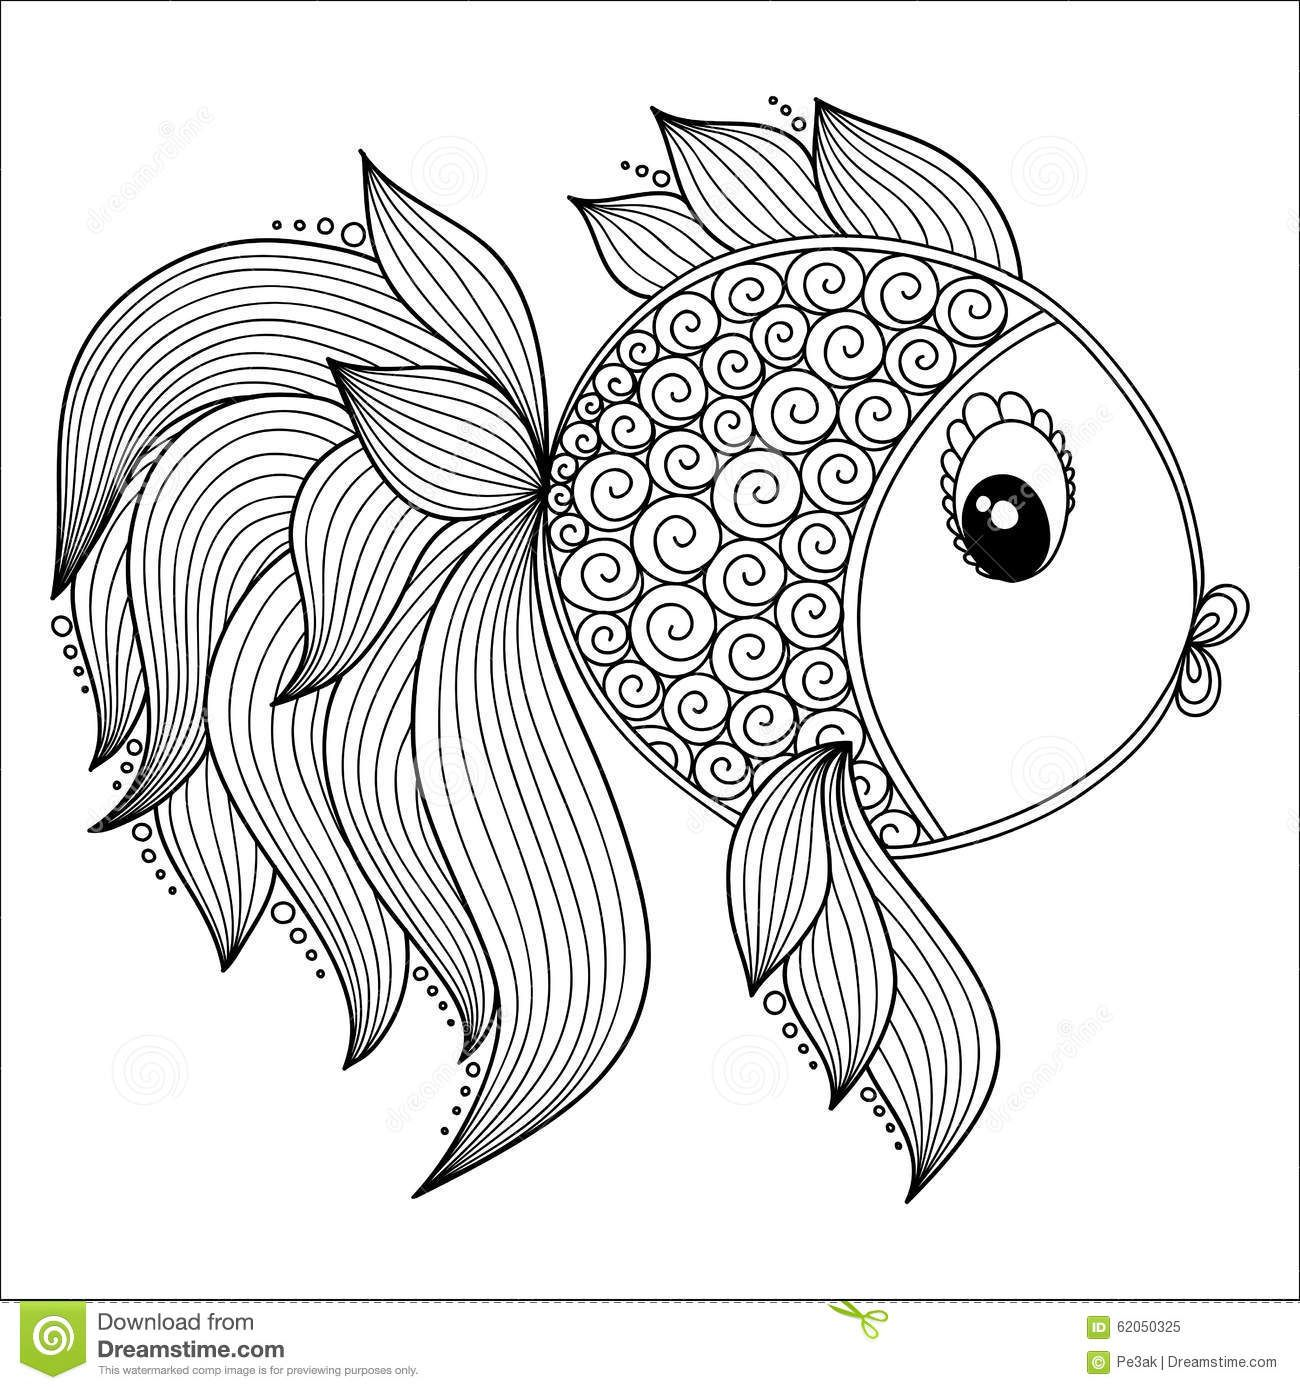 Coloring pages patterns - Coloring Book Stock Photos Images Pictures 16 473 Images Coloring Hard Pinterest Coloring Books